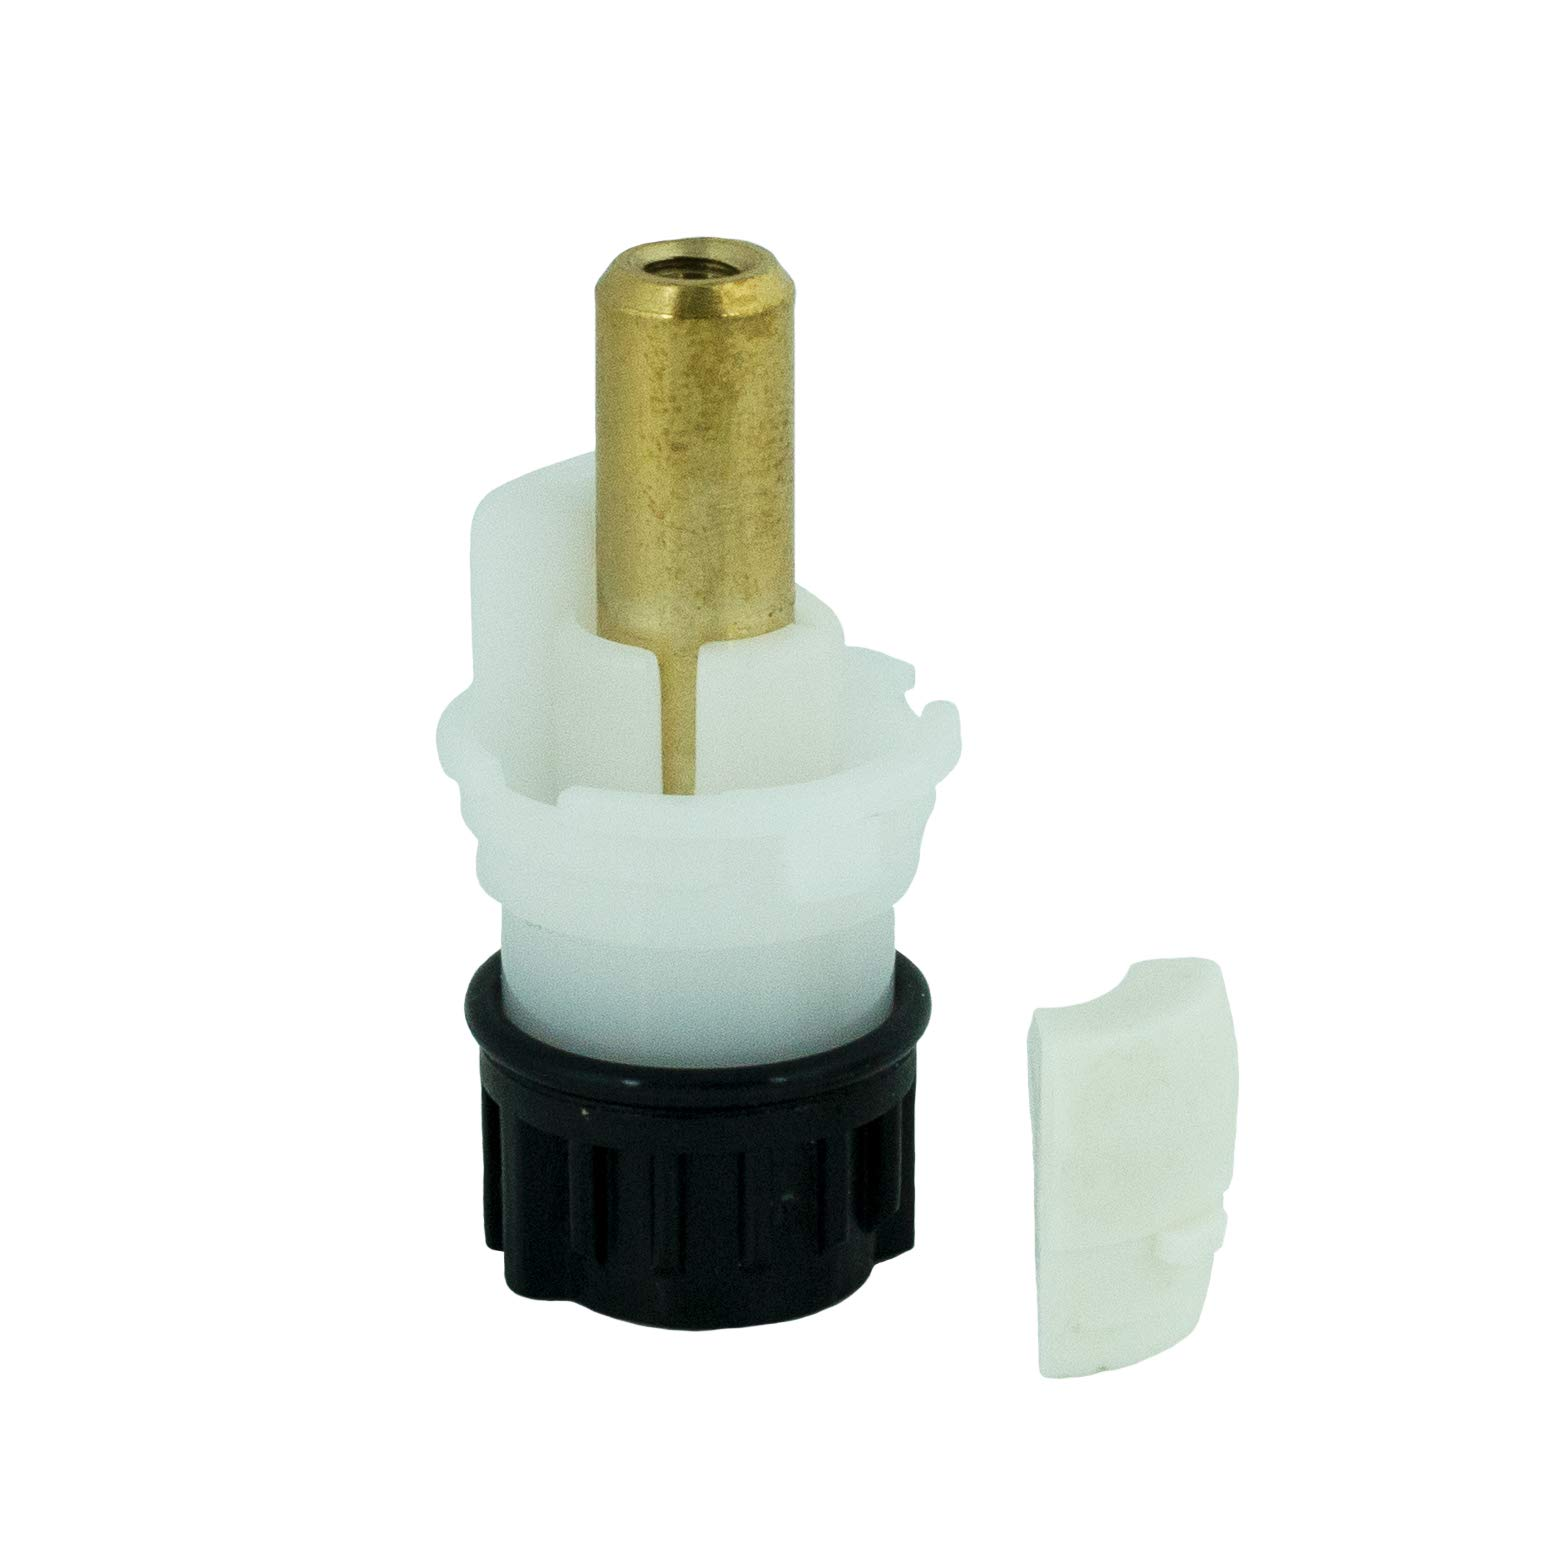 Replacement Stem Assembly for Delta Faucet RP25513